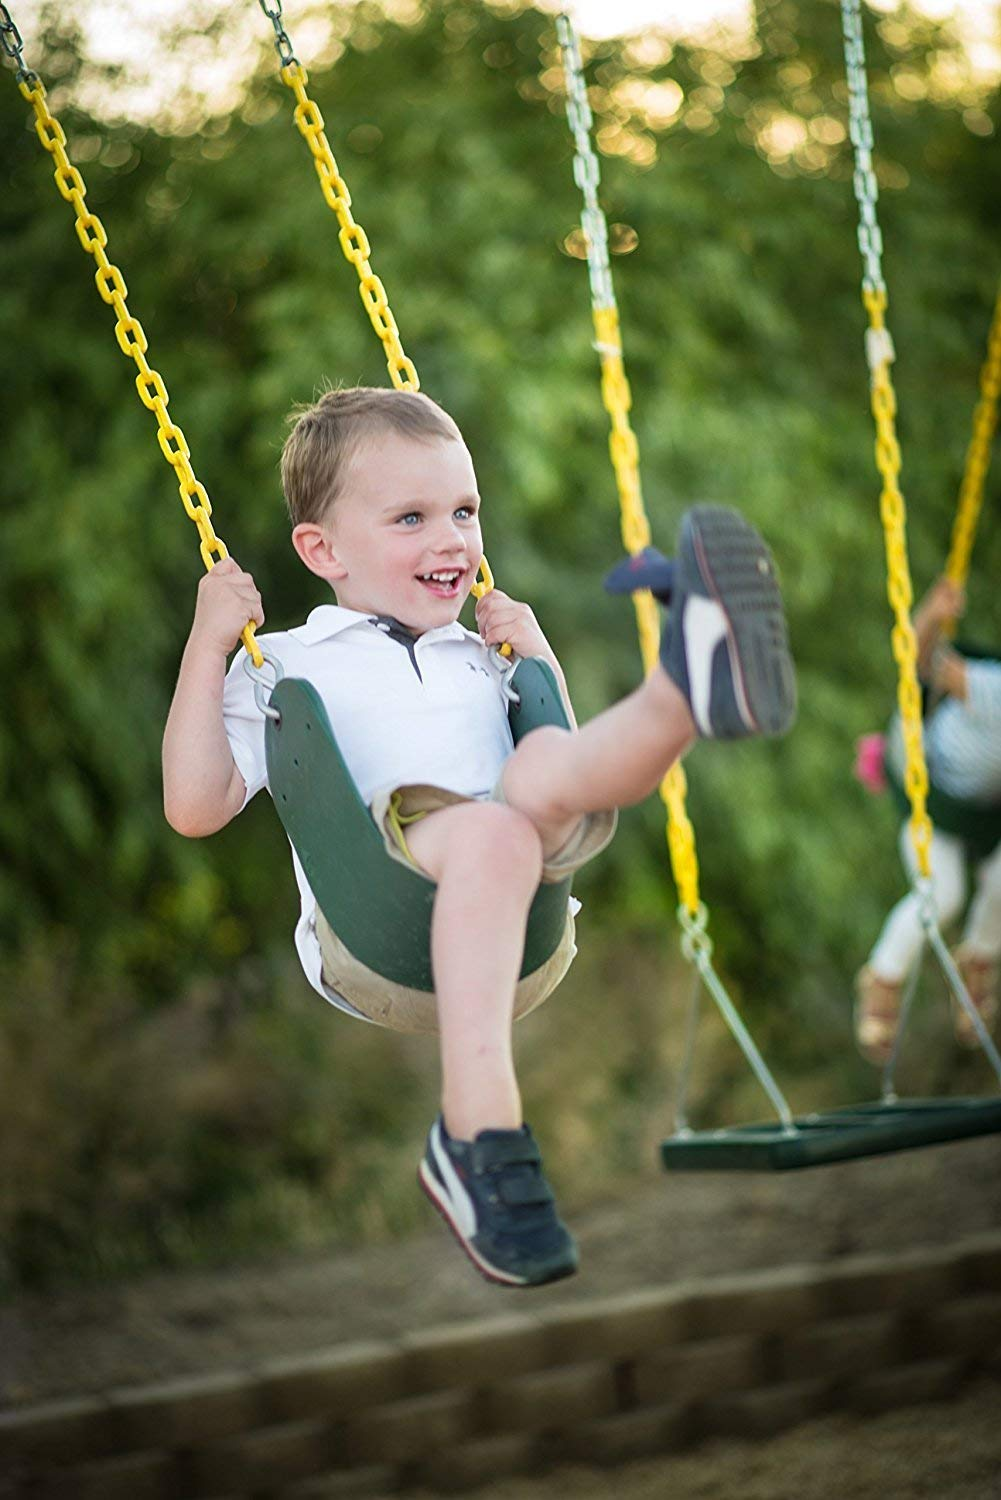 High Back Full Bucket Swing and Heavy Duty Swing Seat - Swing Set Accessories by Squirrel Products (Image #5)